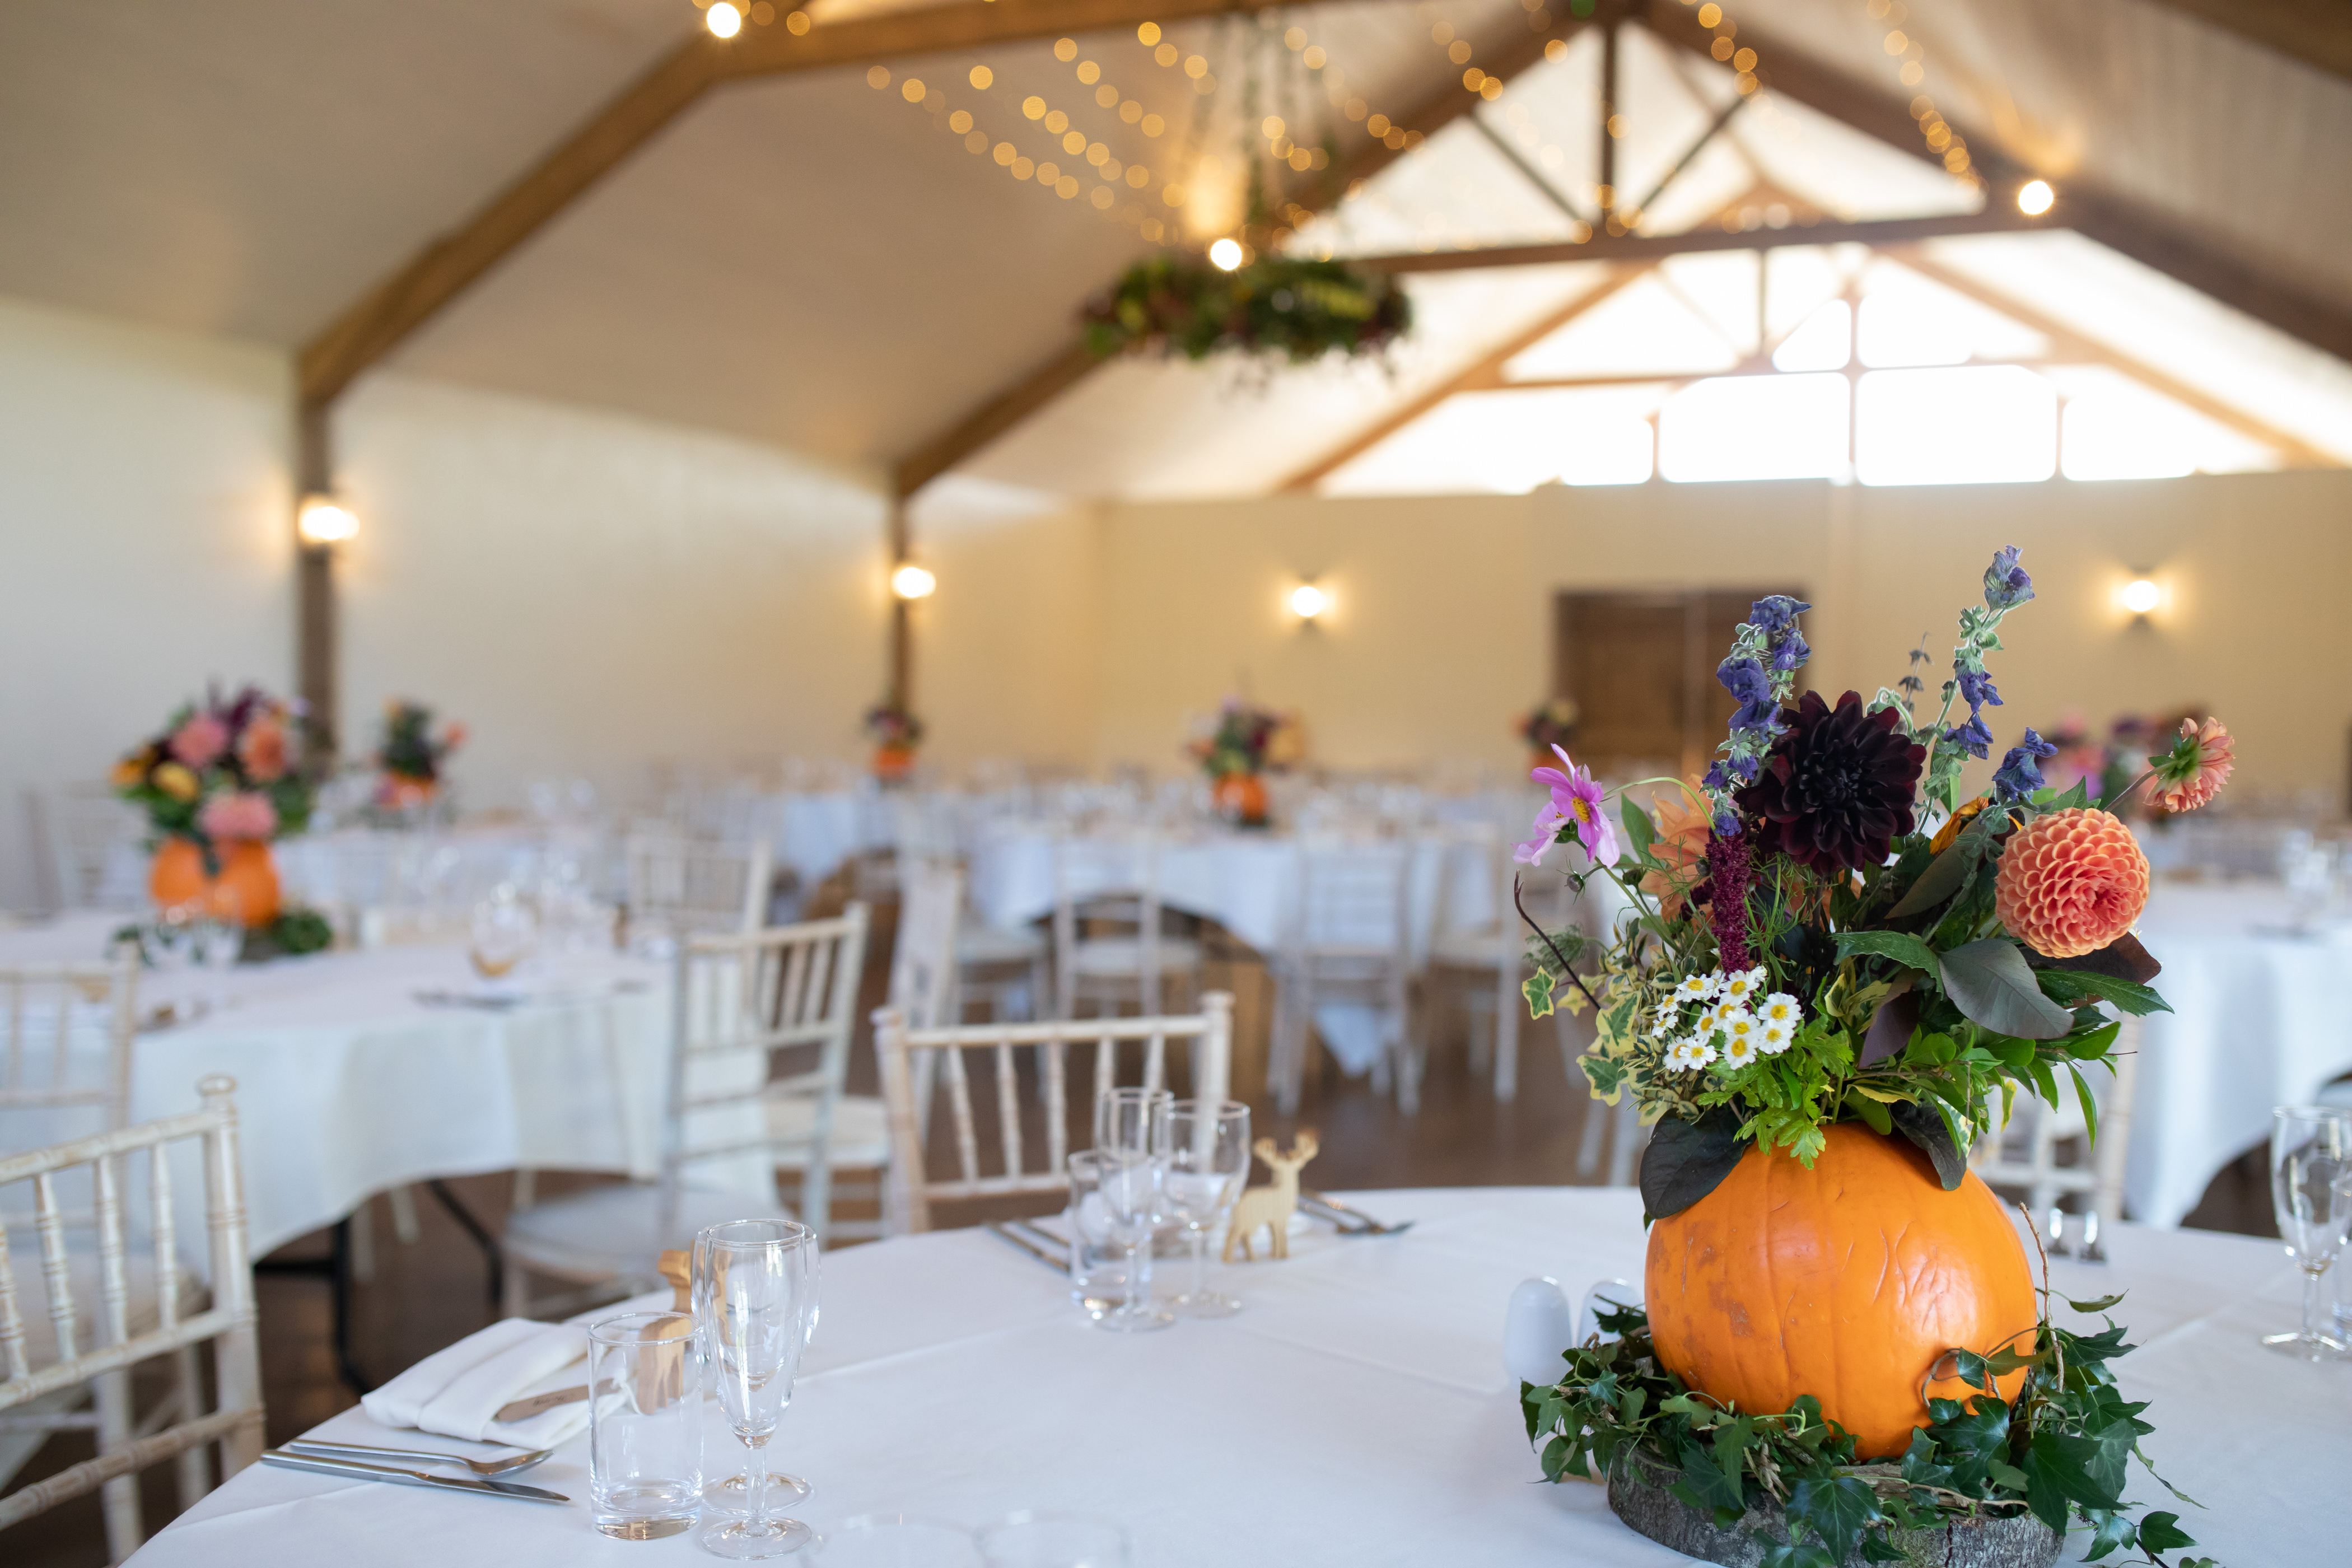 Launcells Barton Caterers